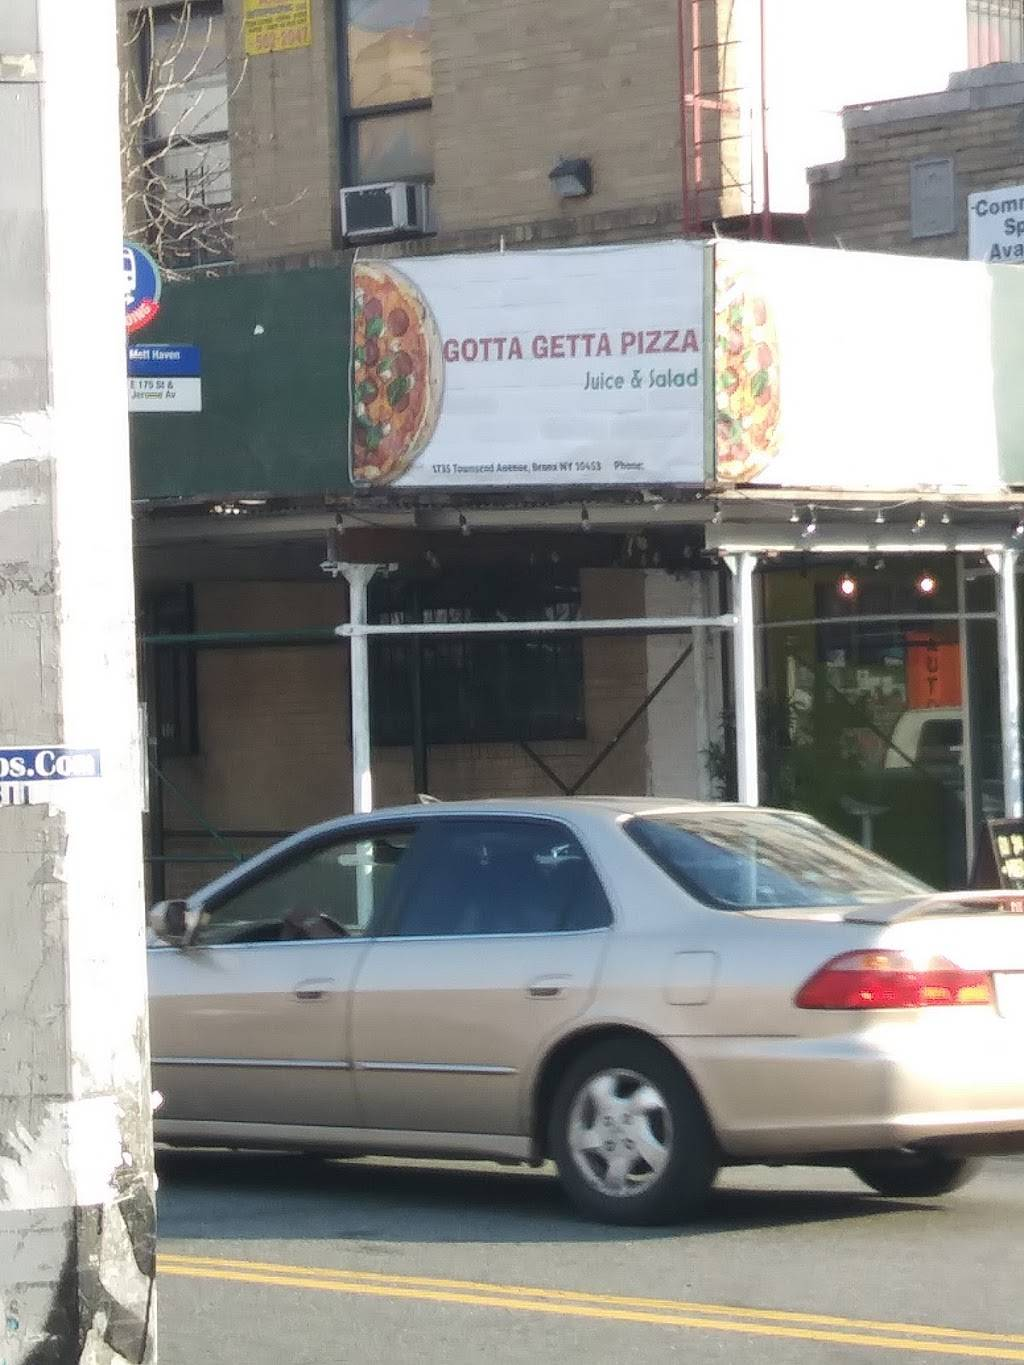 Gotta Getta Pizza | restaurant | 1735 Townsend Ave Store A, Bronx, NY 10453, USA | 3477322200 OR +1 347-732-2200